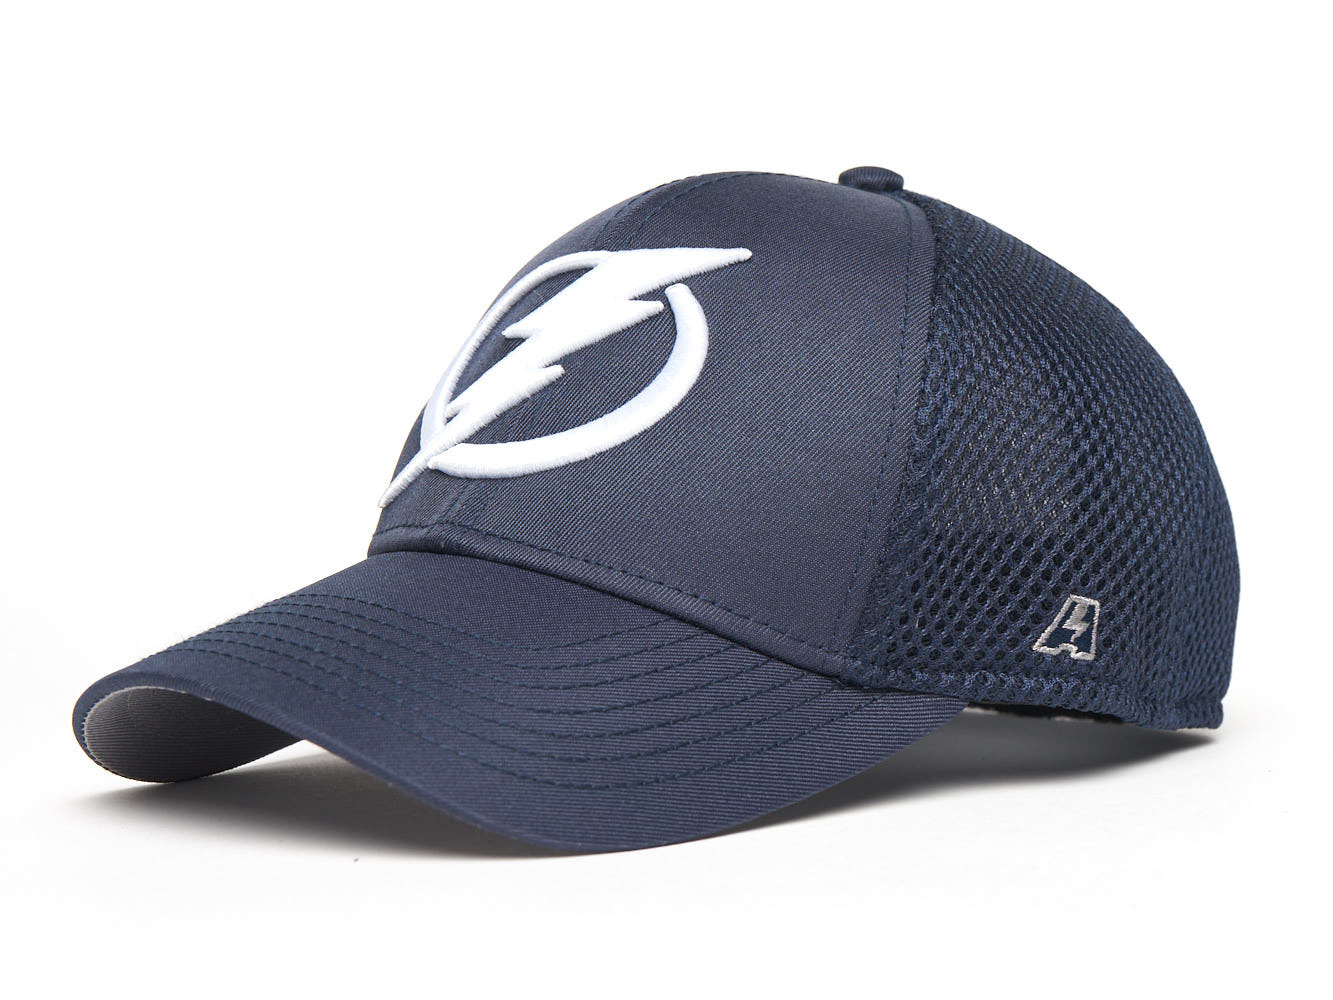 Бейсболка NHL Tampa Bay Lightning (размер M/L)